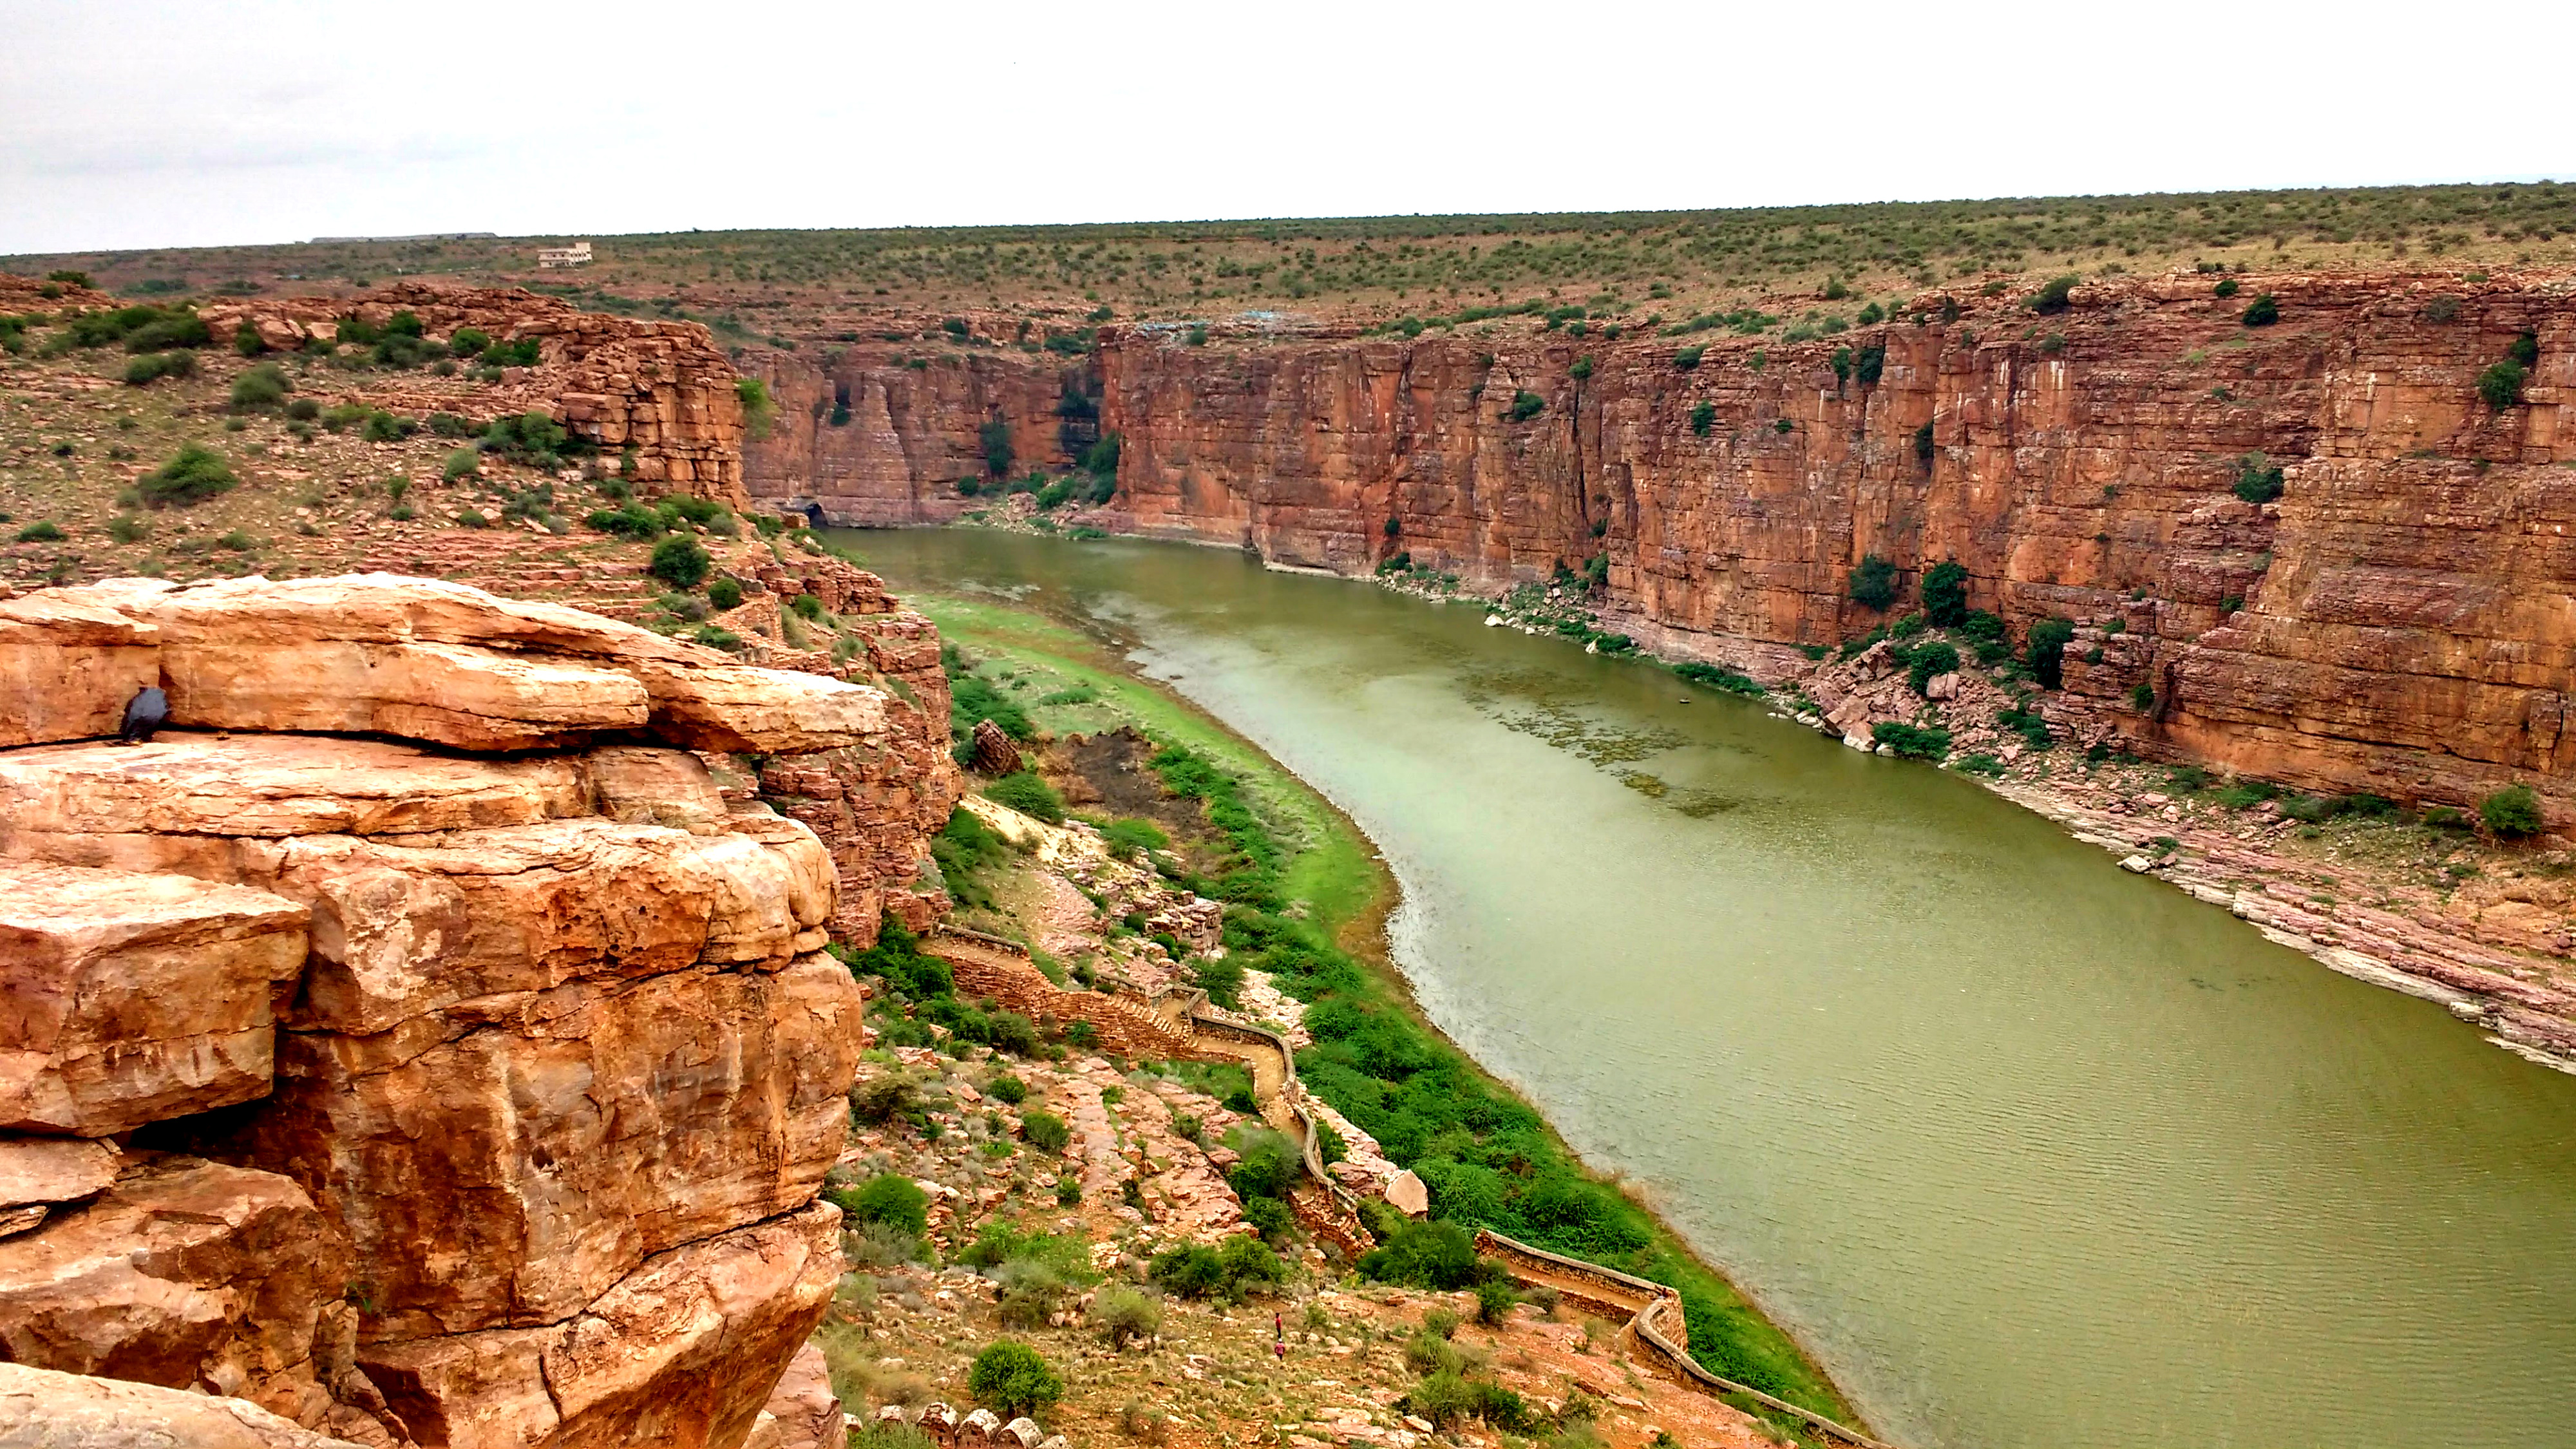 Gandikota: The Grand Canyon of India